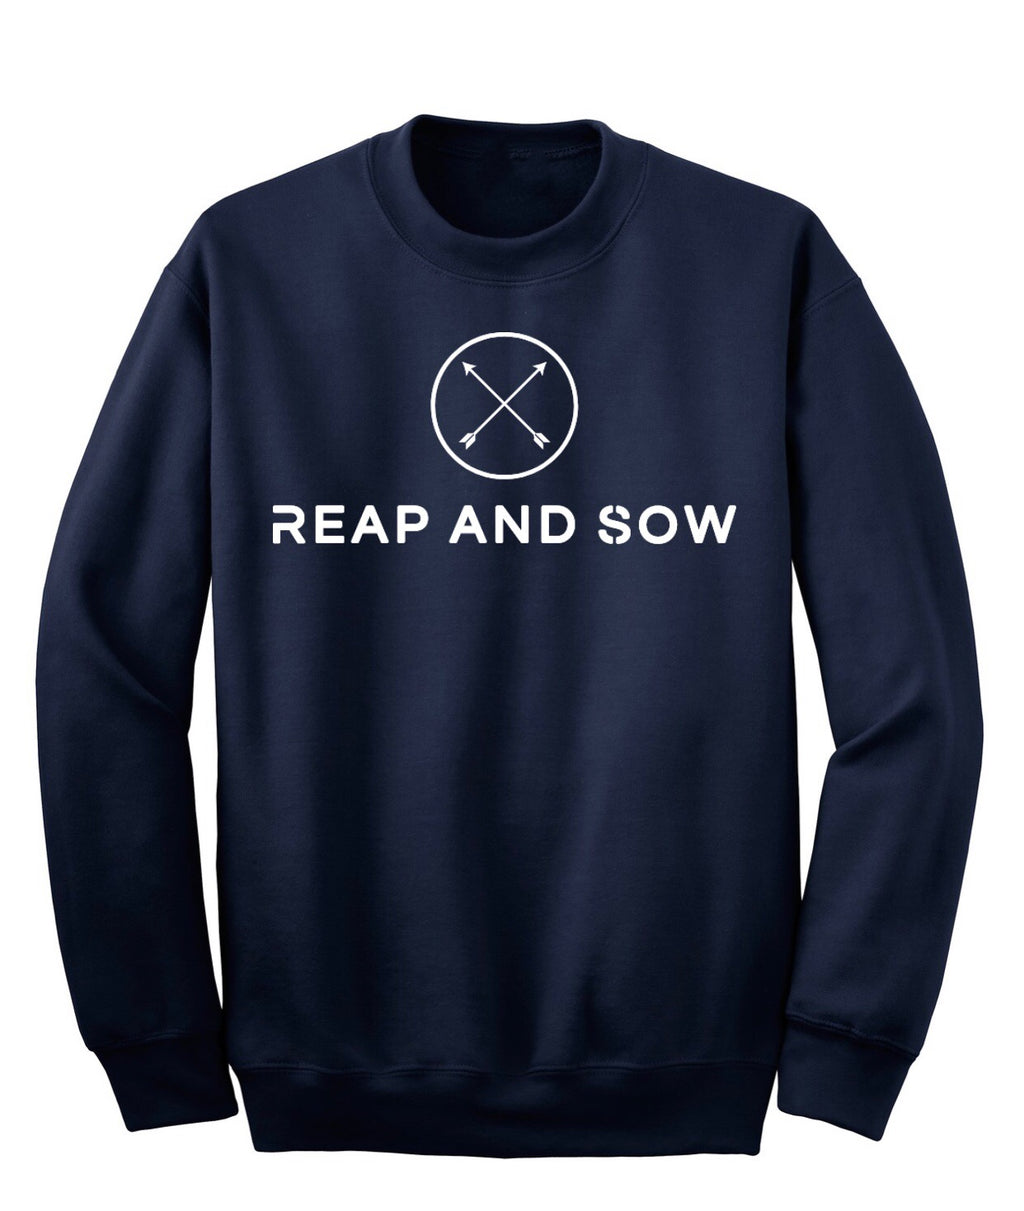 Original Reap and Sow Crew Neck              (click for color options)